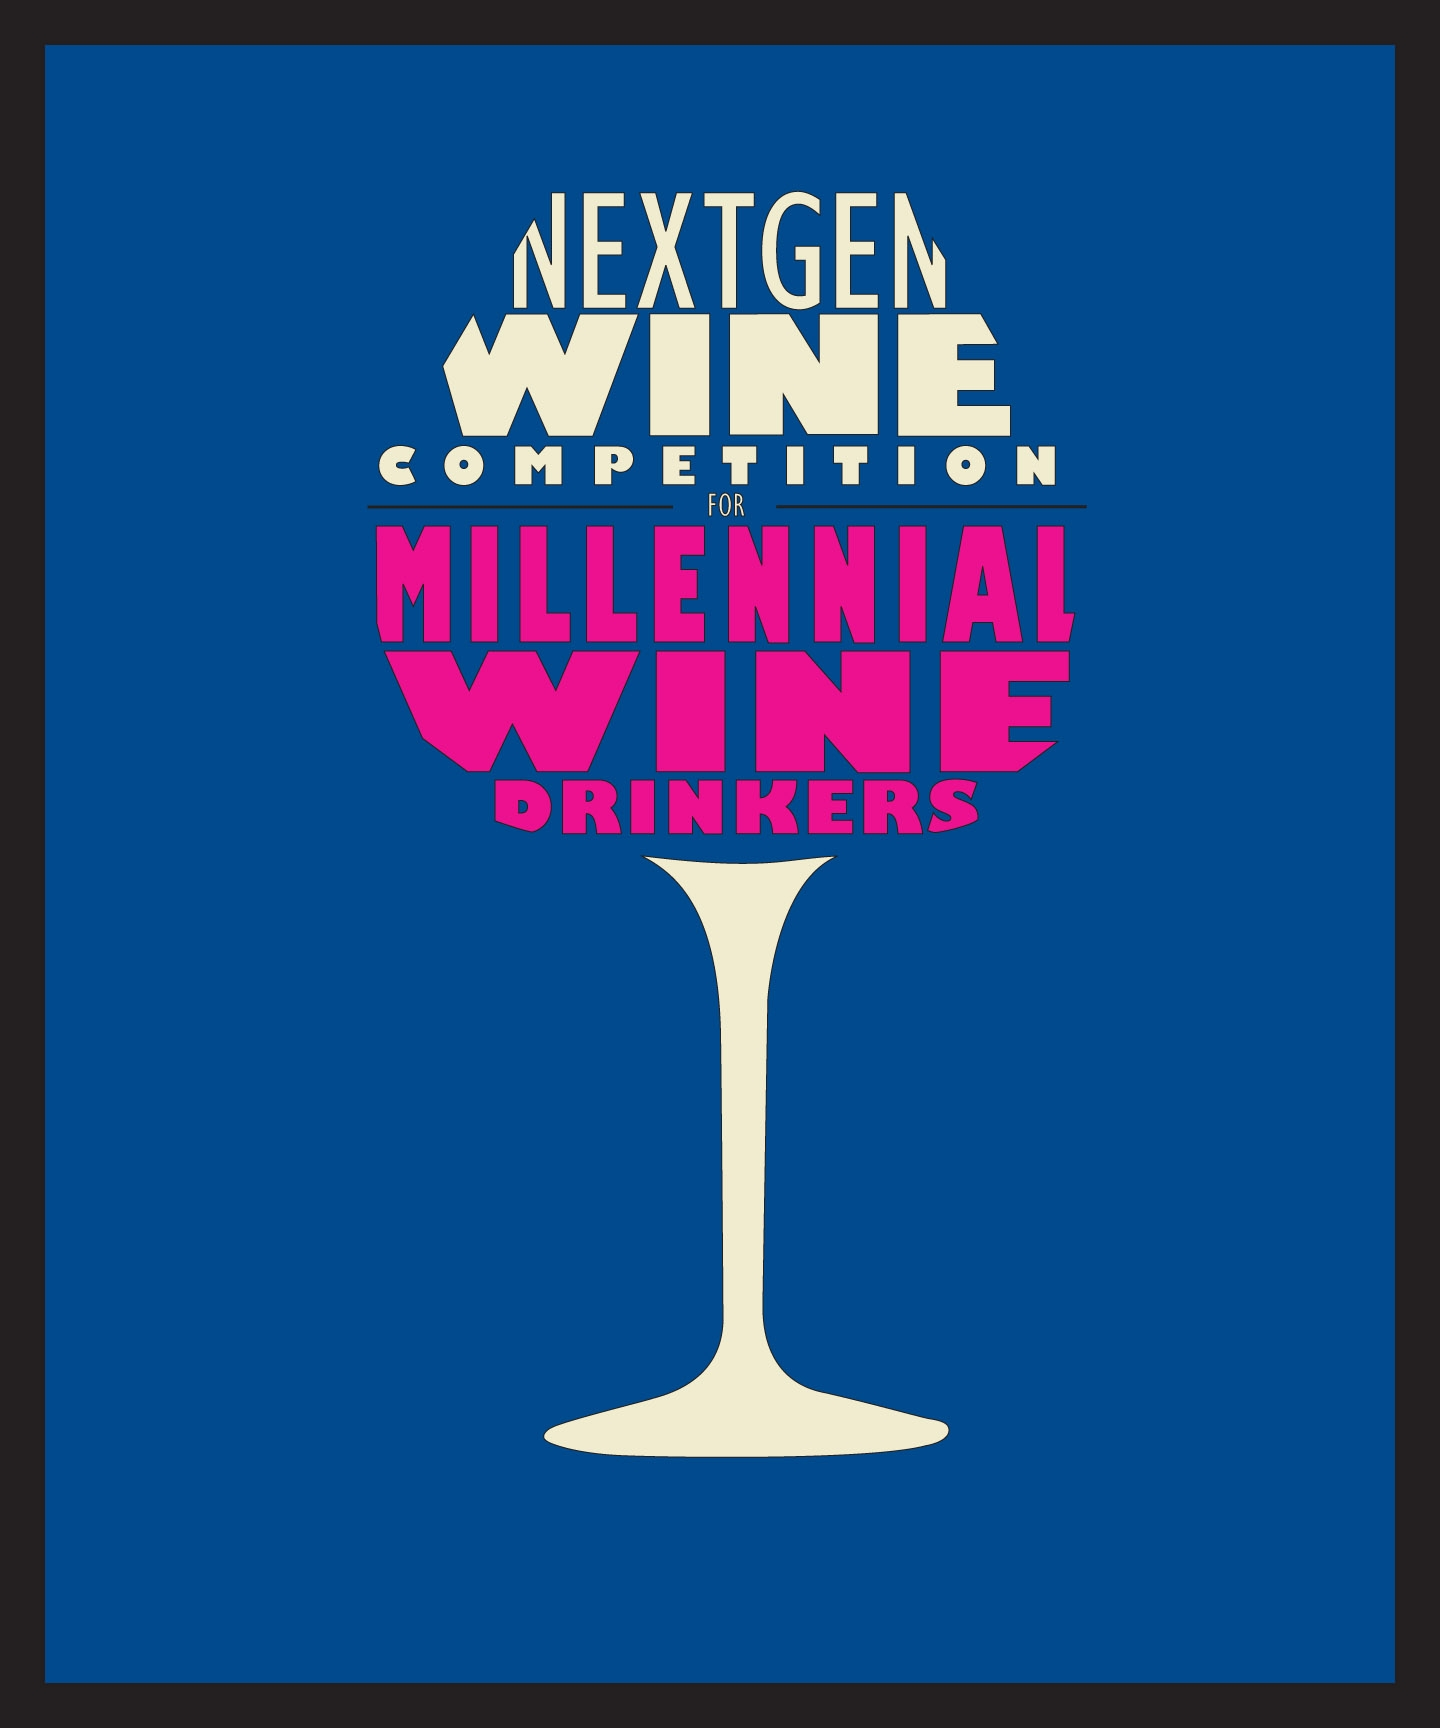 NextGen Wine Competition for Millennial Wine Drinkers Logo